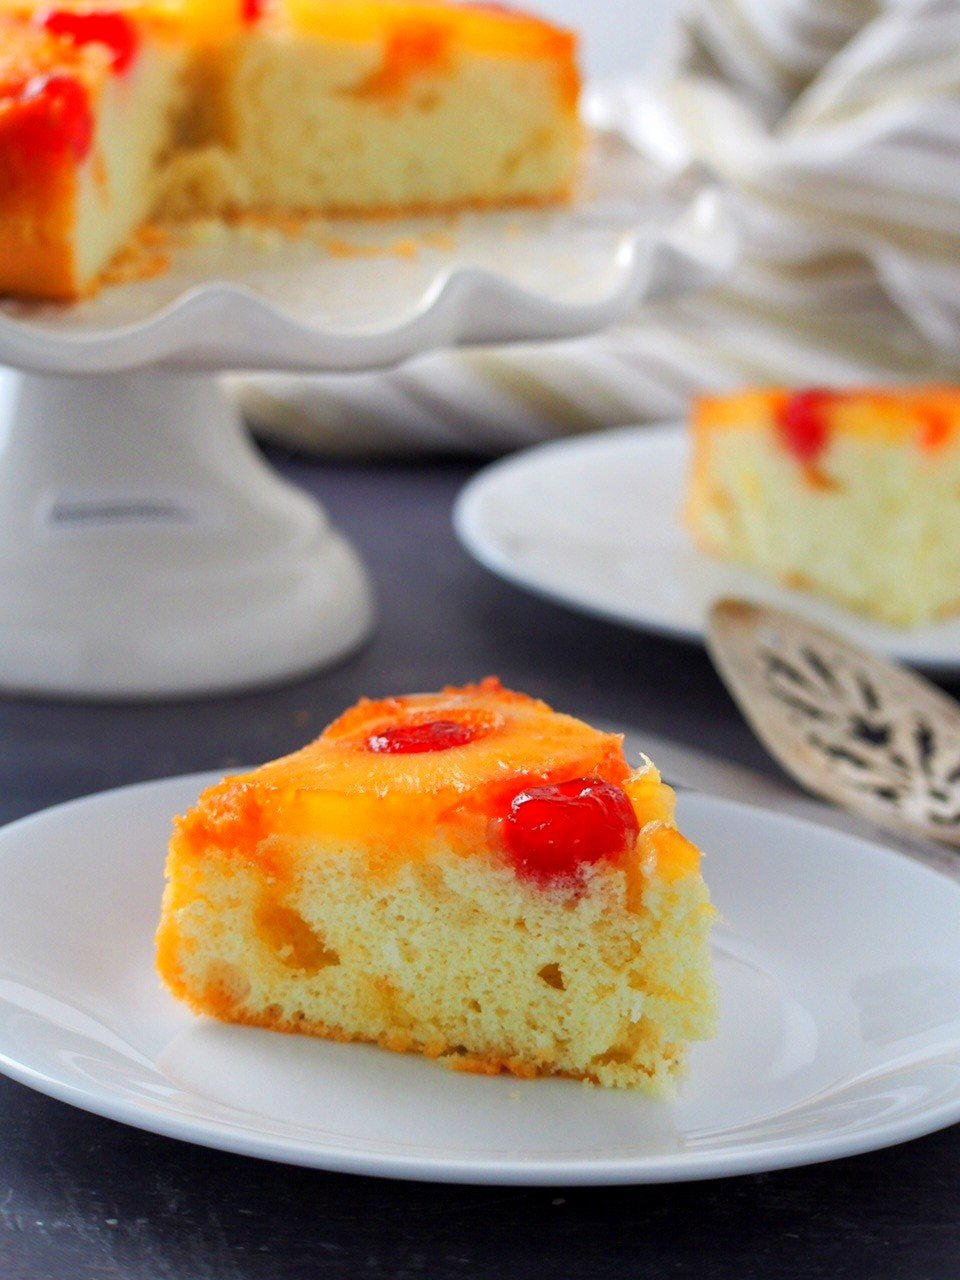 A slice of Pineapple Upside Down Cake on a plate.